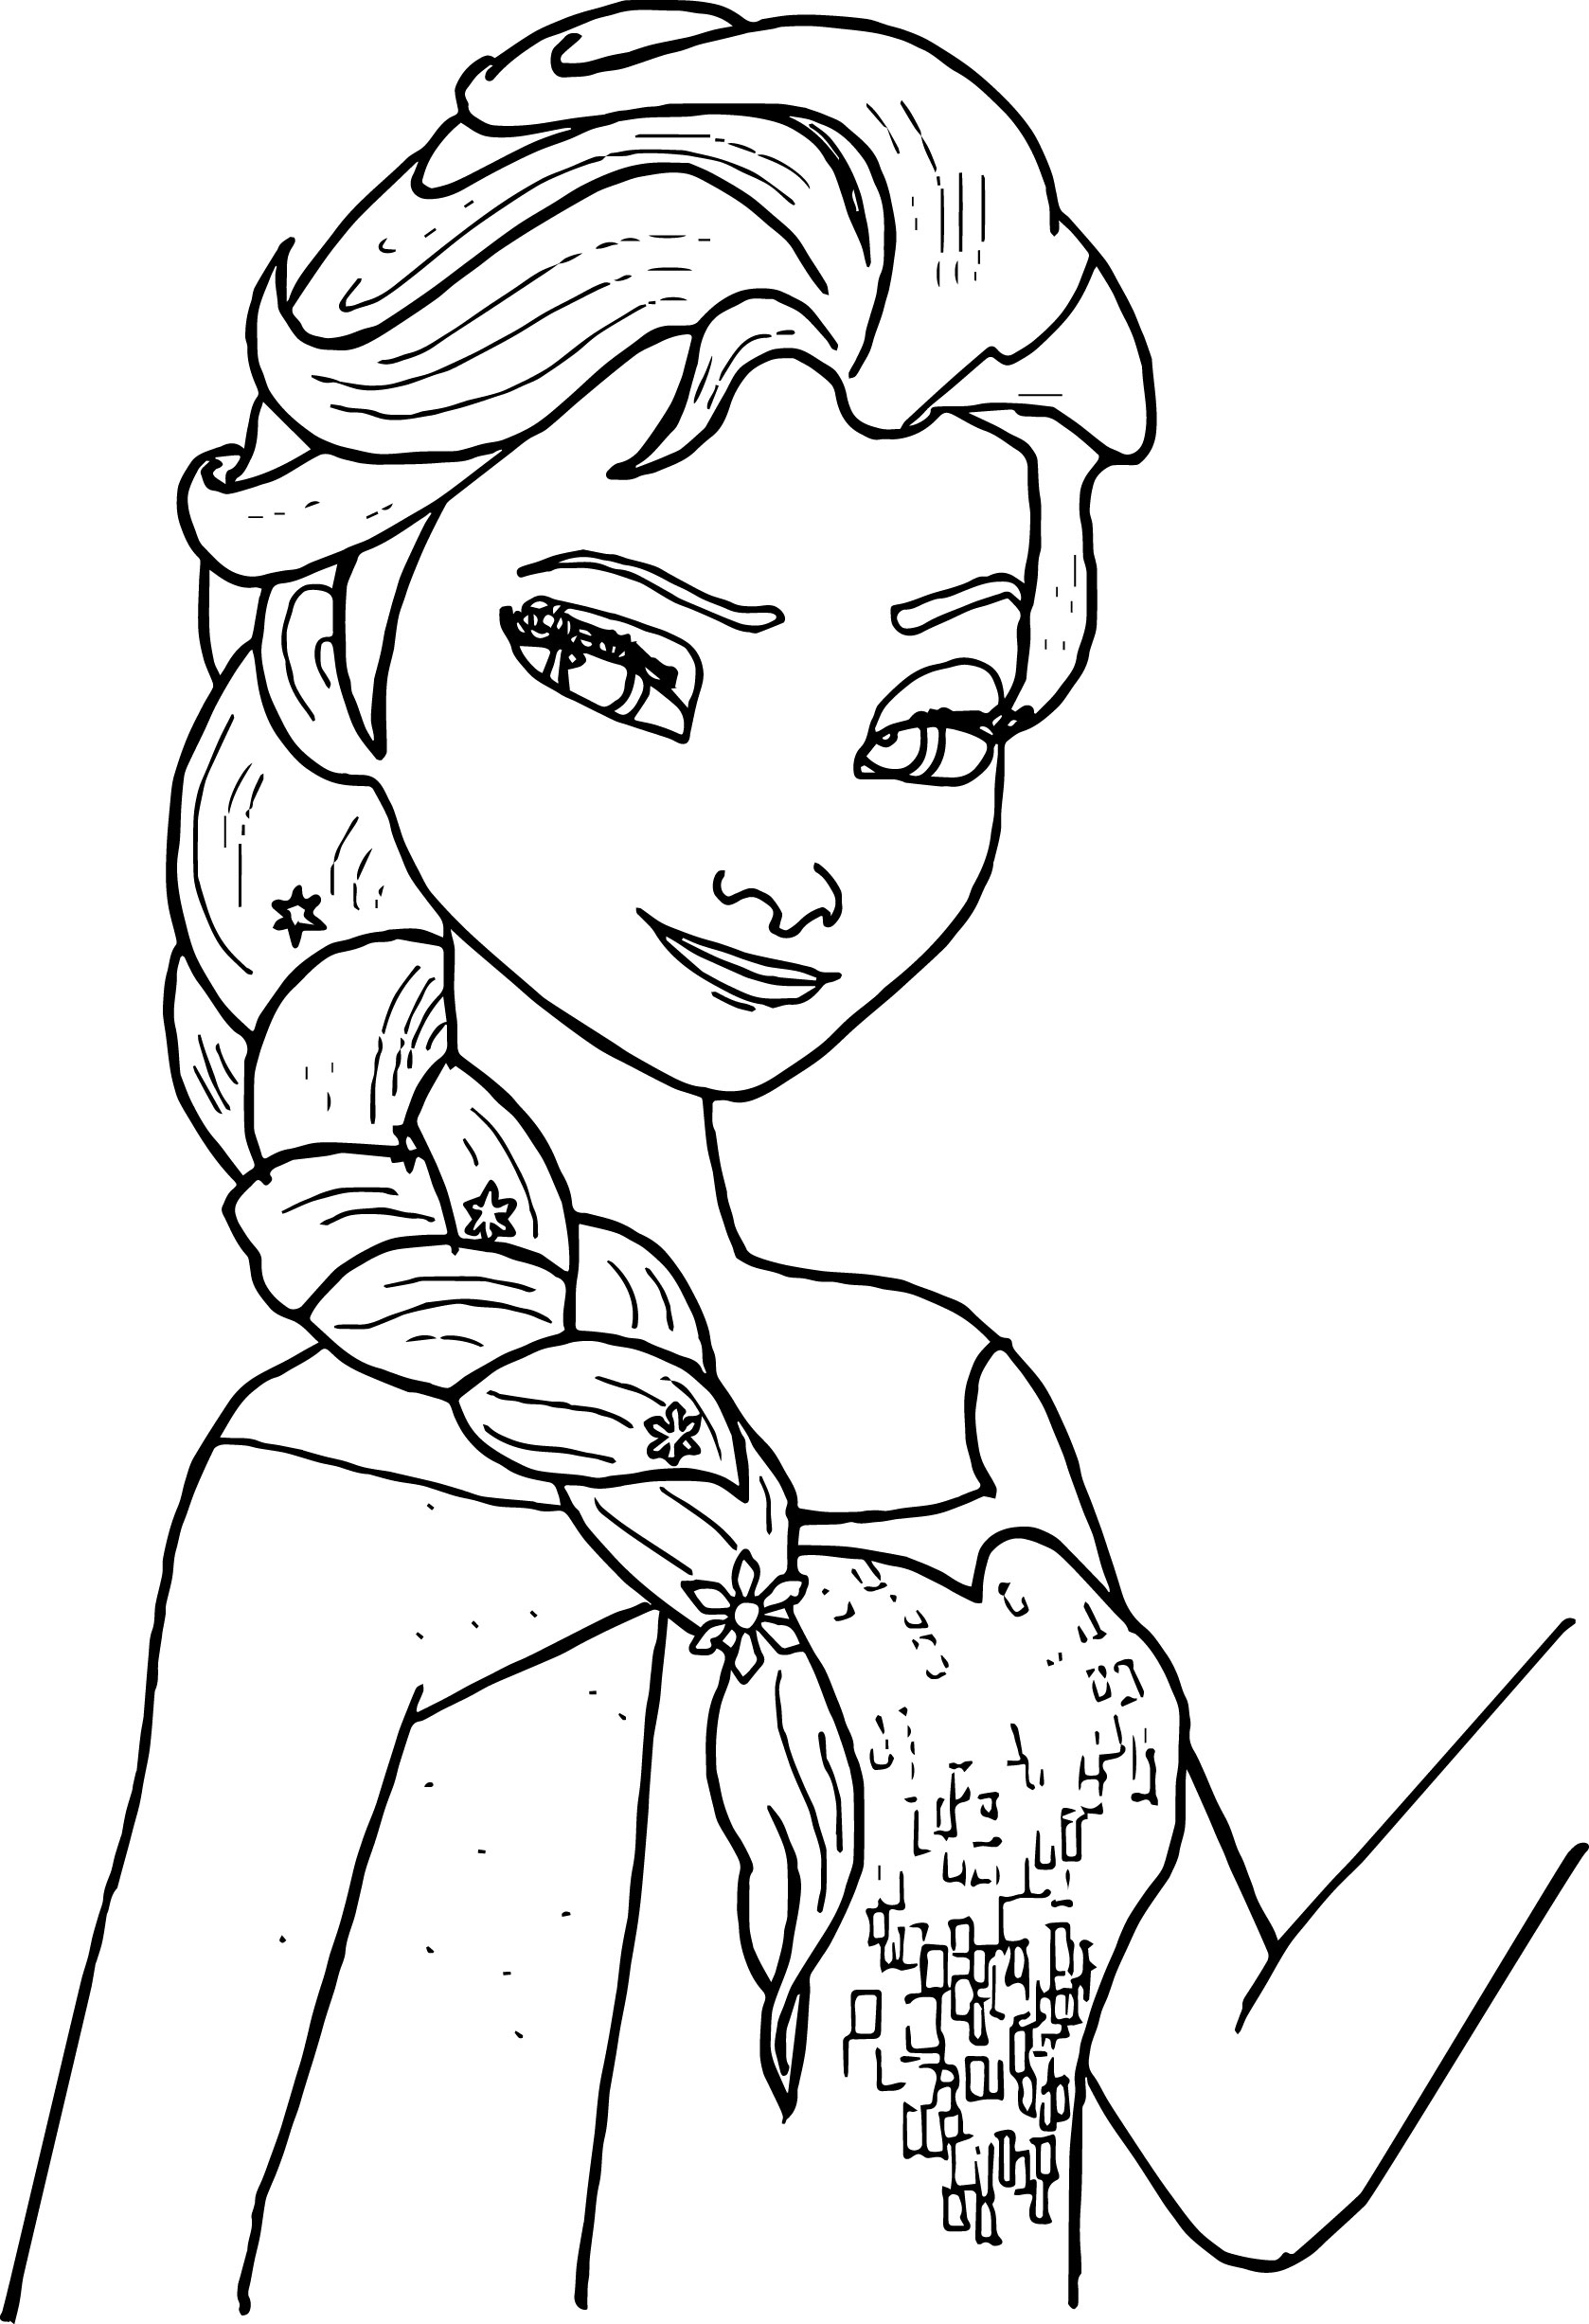 Free Printable Elsa Coloring Pages For Kids Best Children S Printable Coloring Pages